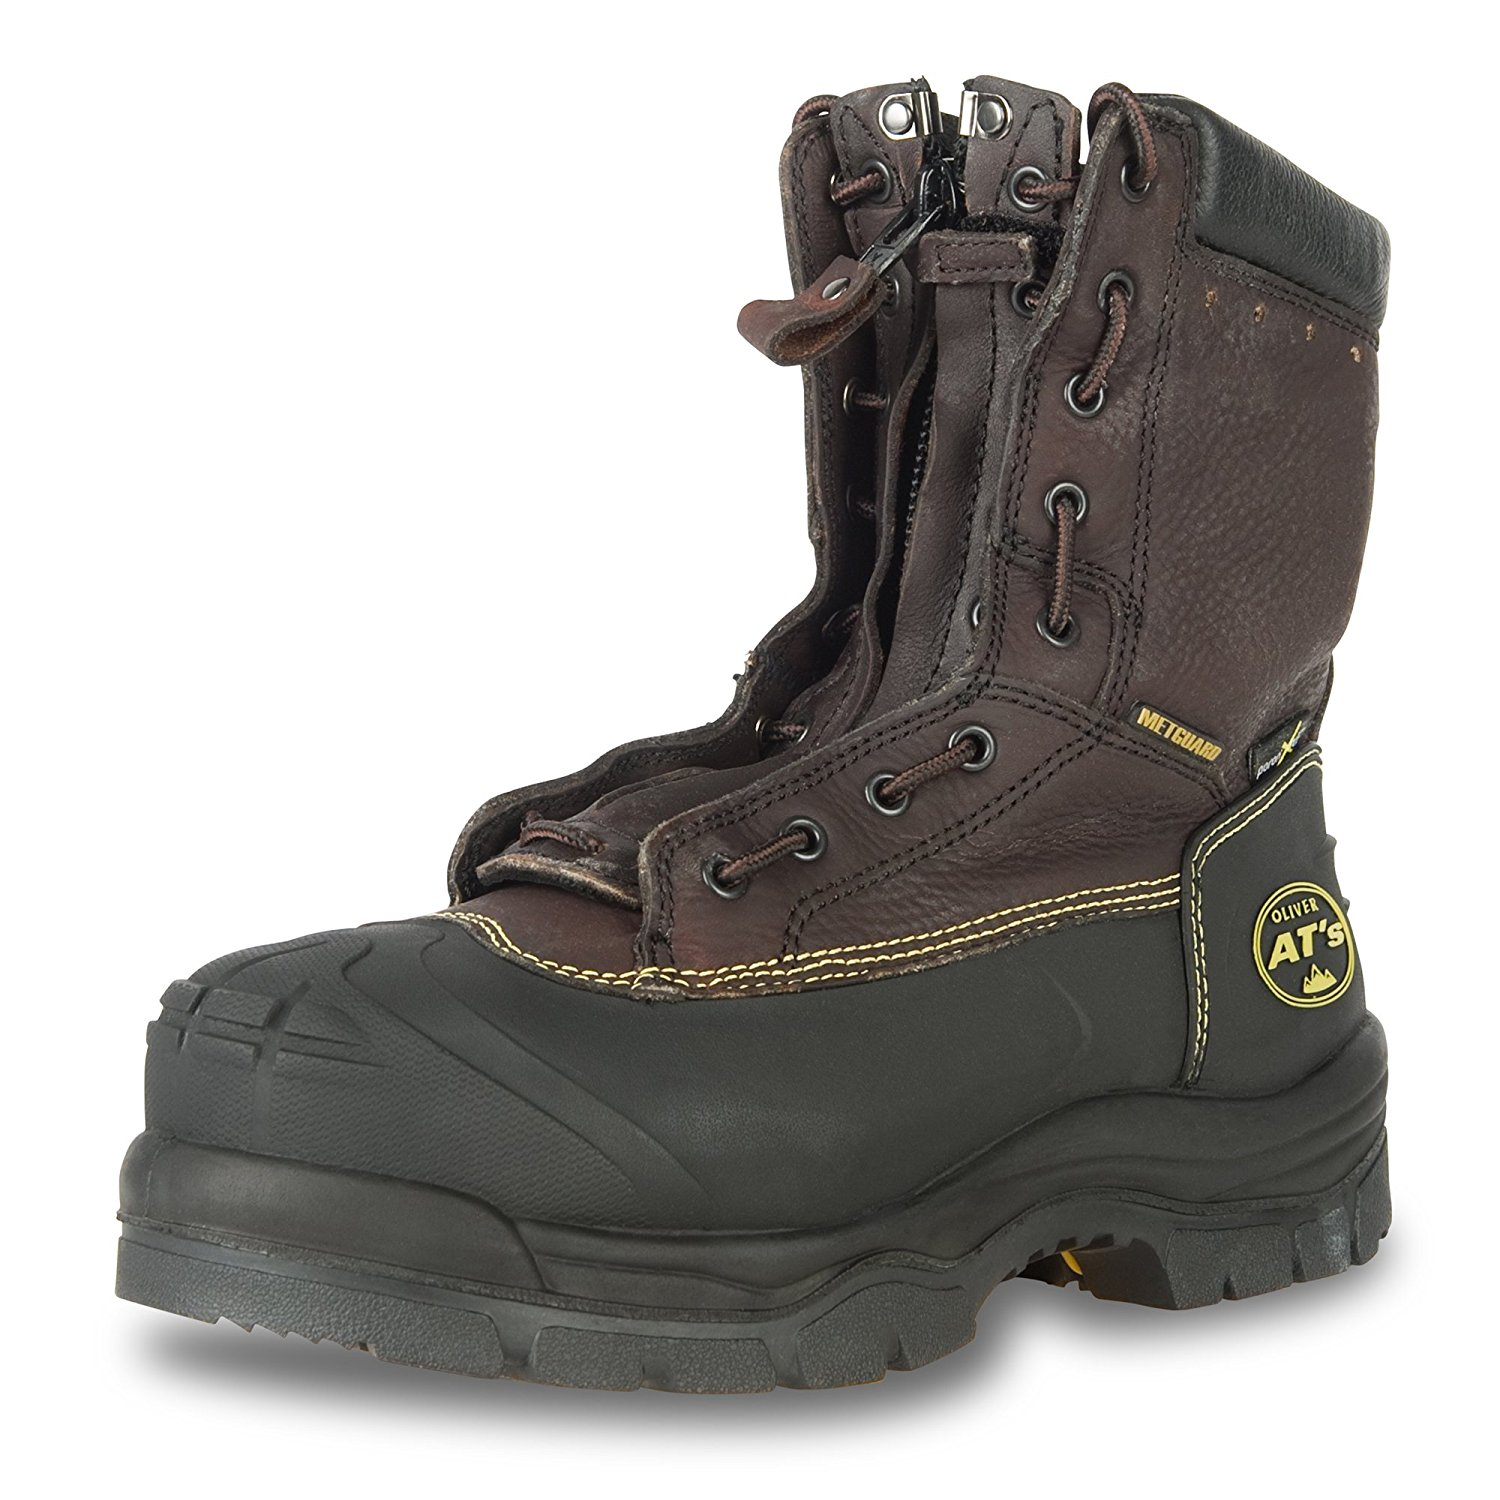 98febd968d3 Cheap Metatarsal Safety Boots, find Metatarsal Safety Boots deals on ...